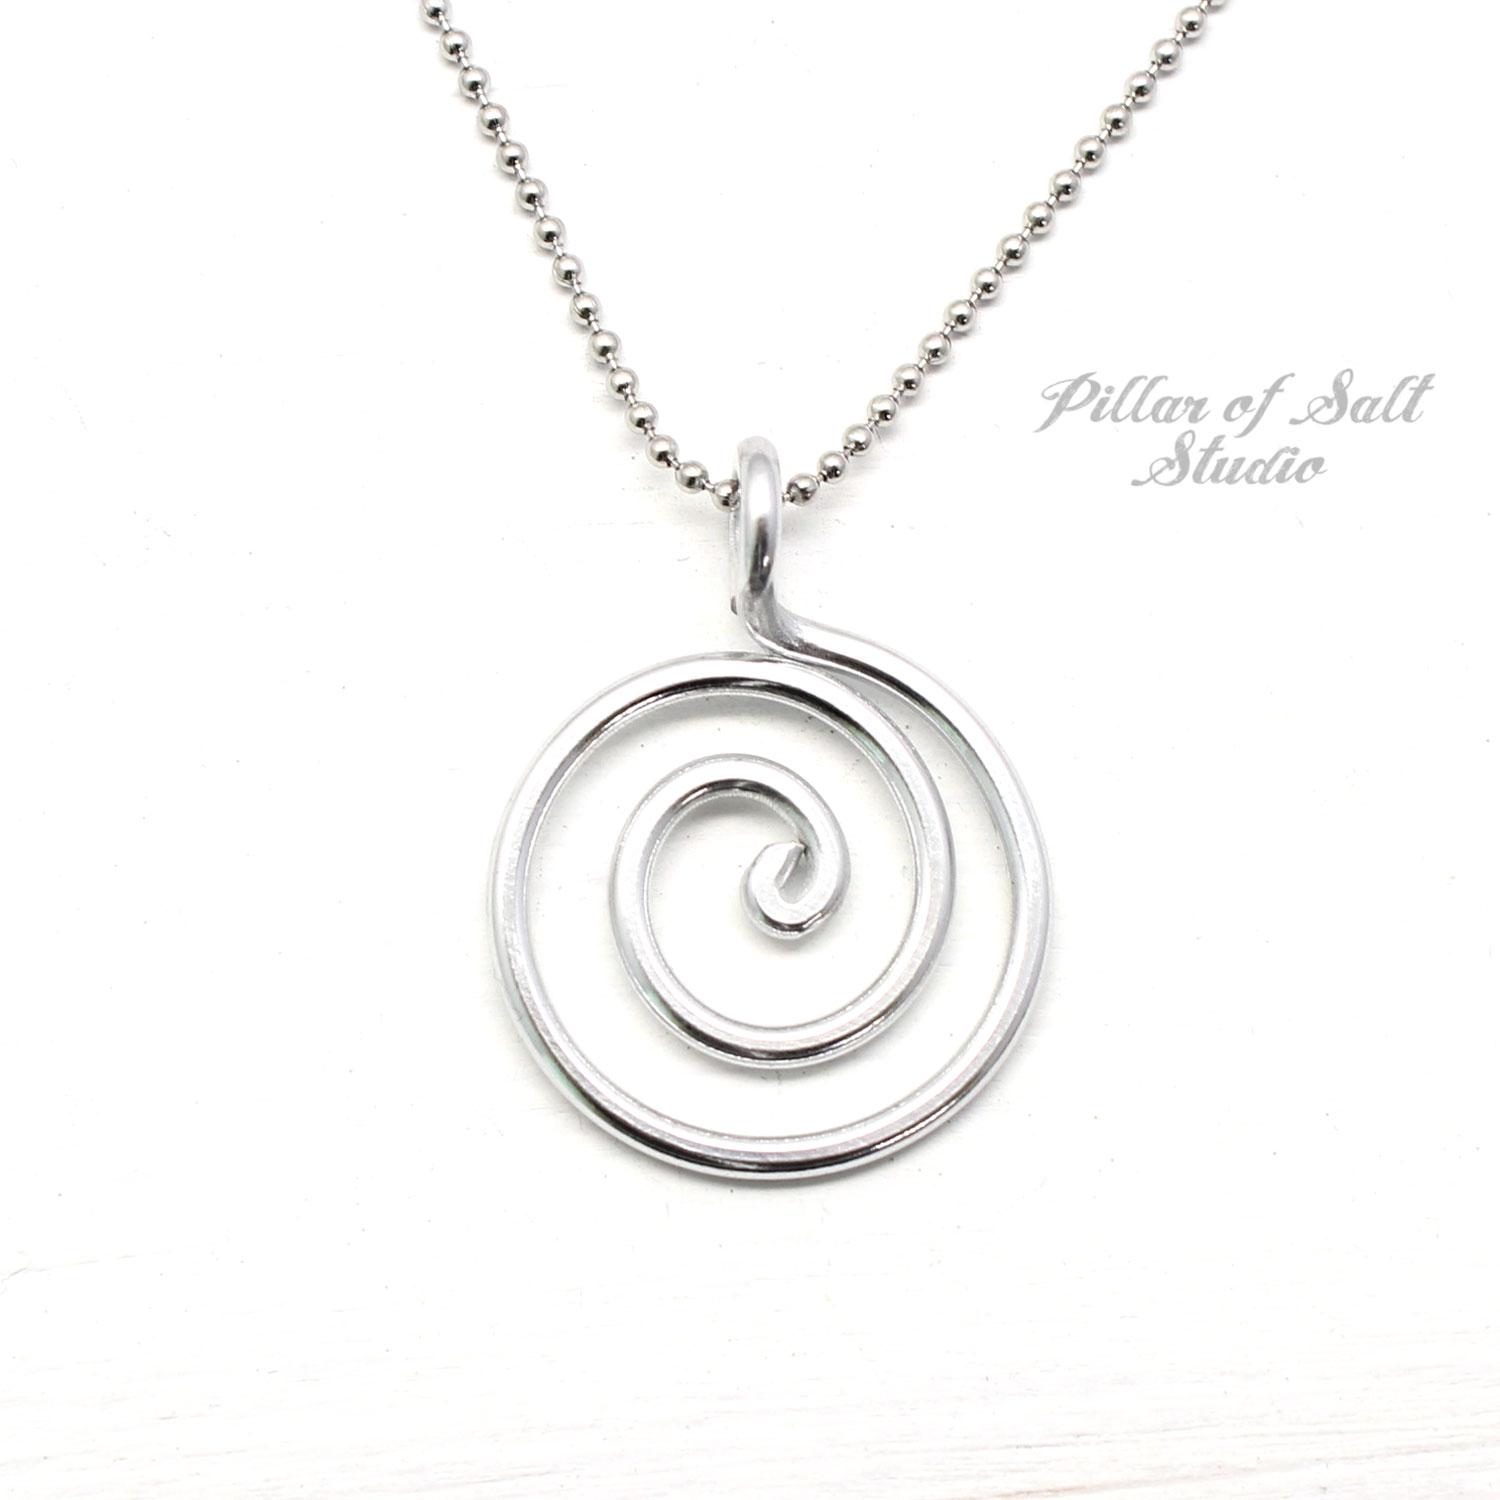 aluminum wire wrapped pendant with stainless steel chain.